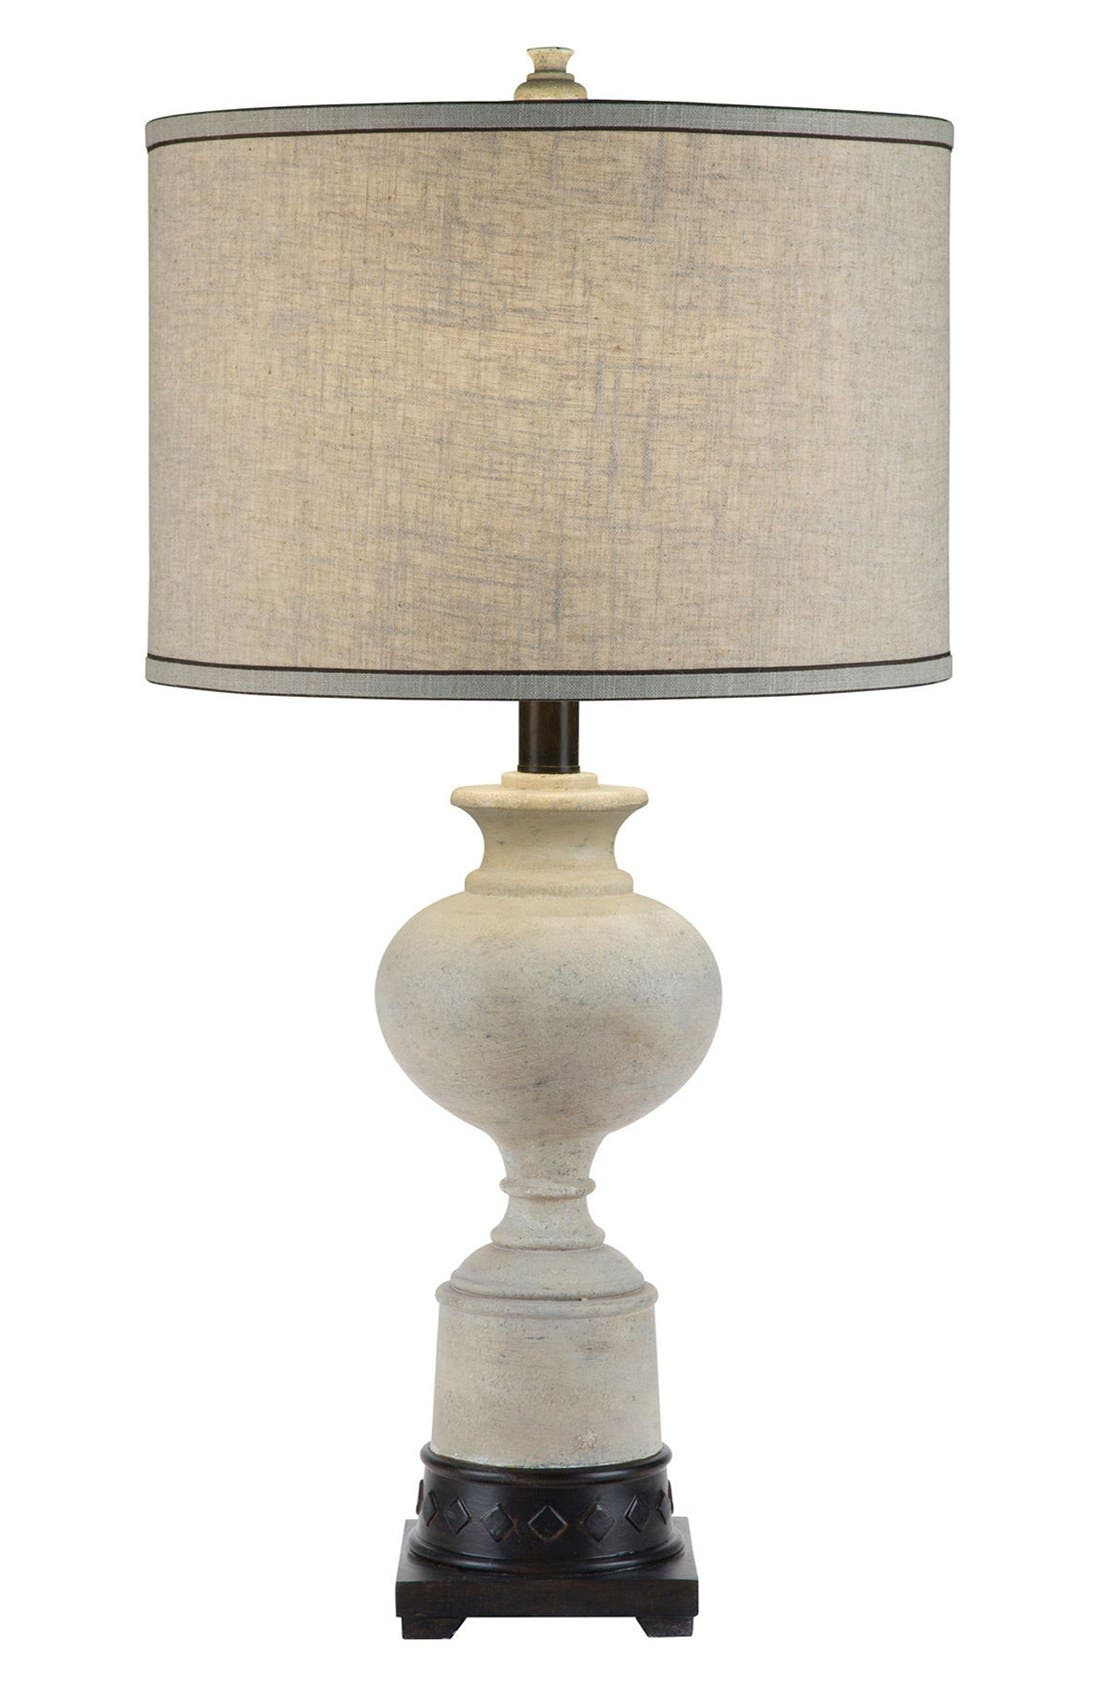 Main Image - JAlexander 'Trophy' Whitewash Table Lamp